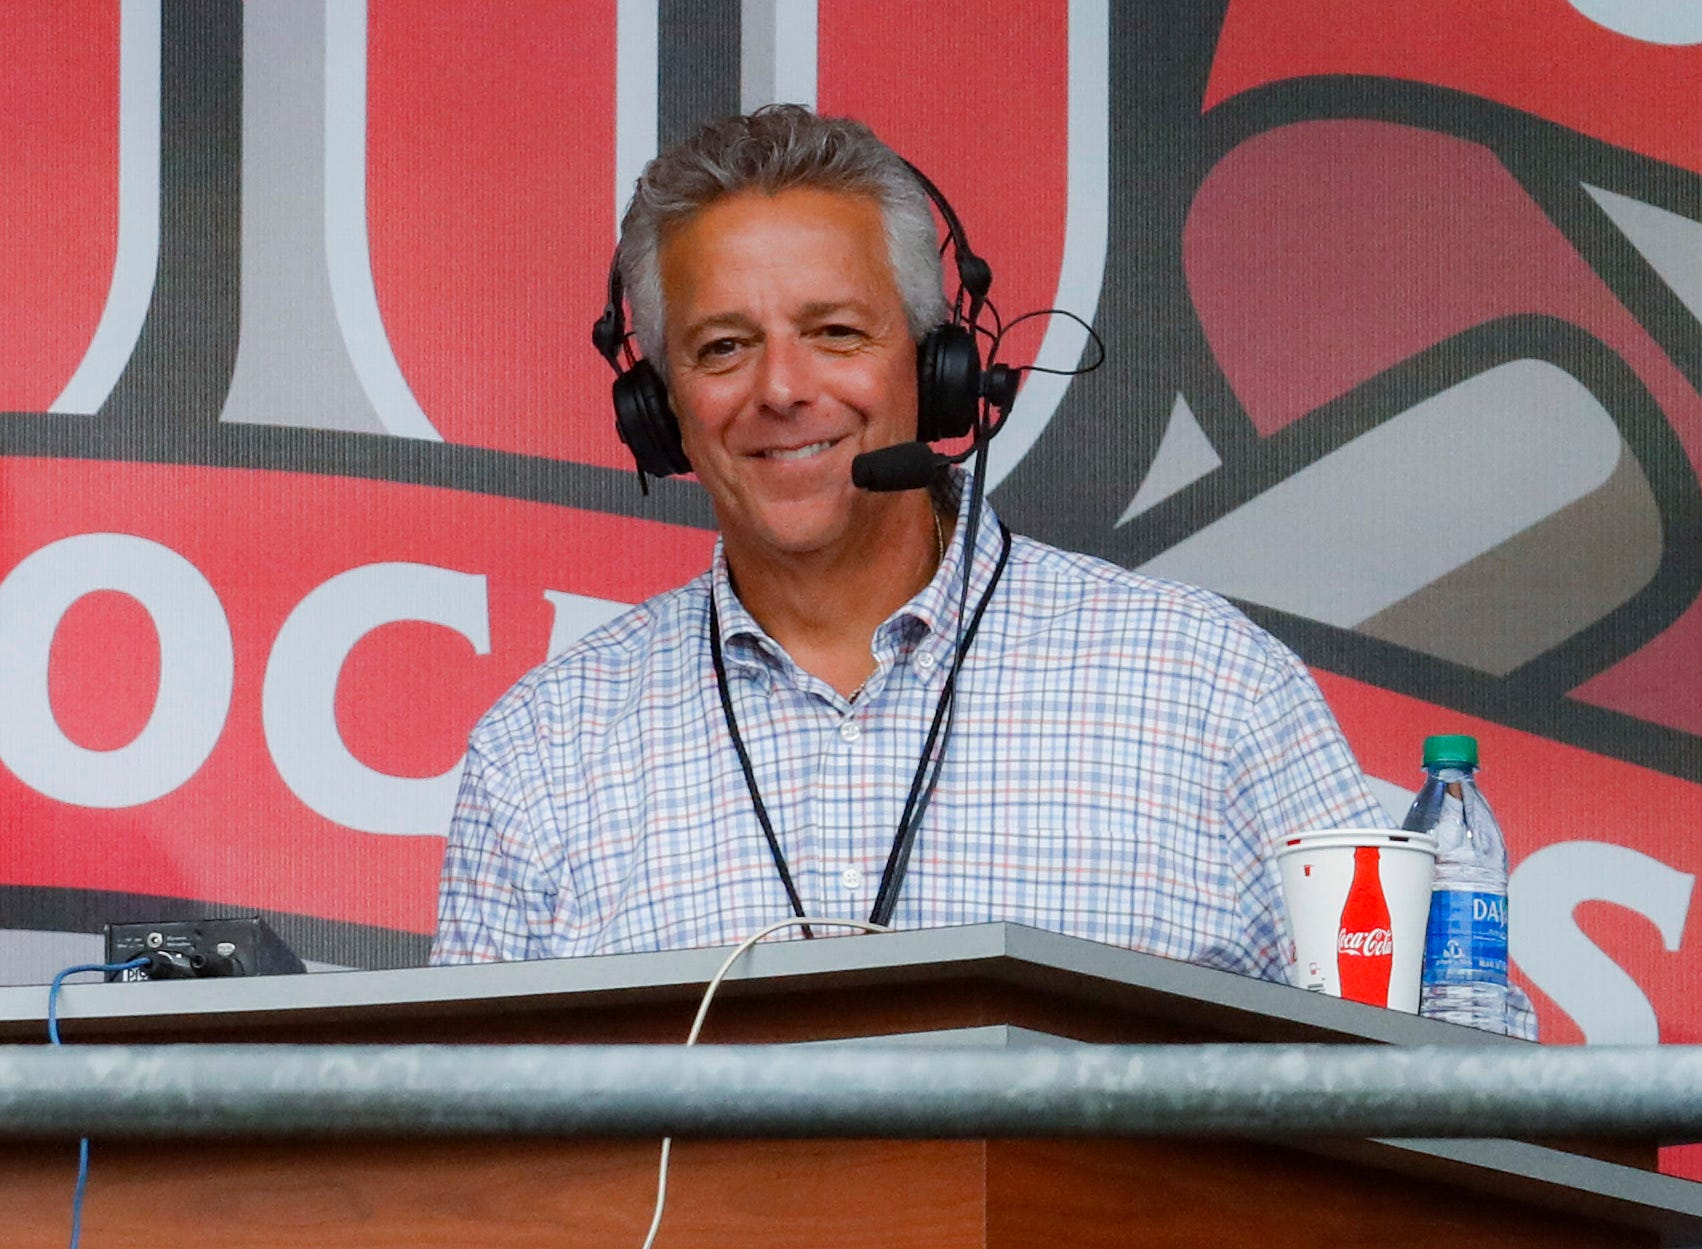 Exclusive: Former voice of the Reds' Thom Brennaman: 'I know I hurt a lot of people'